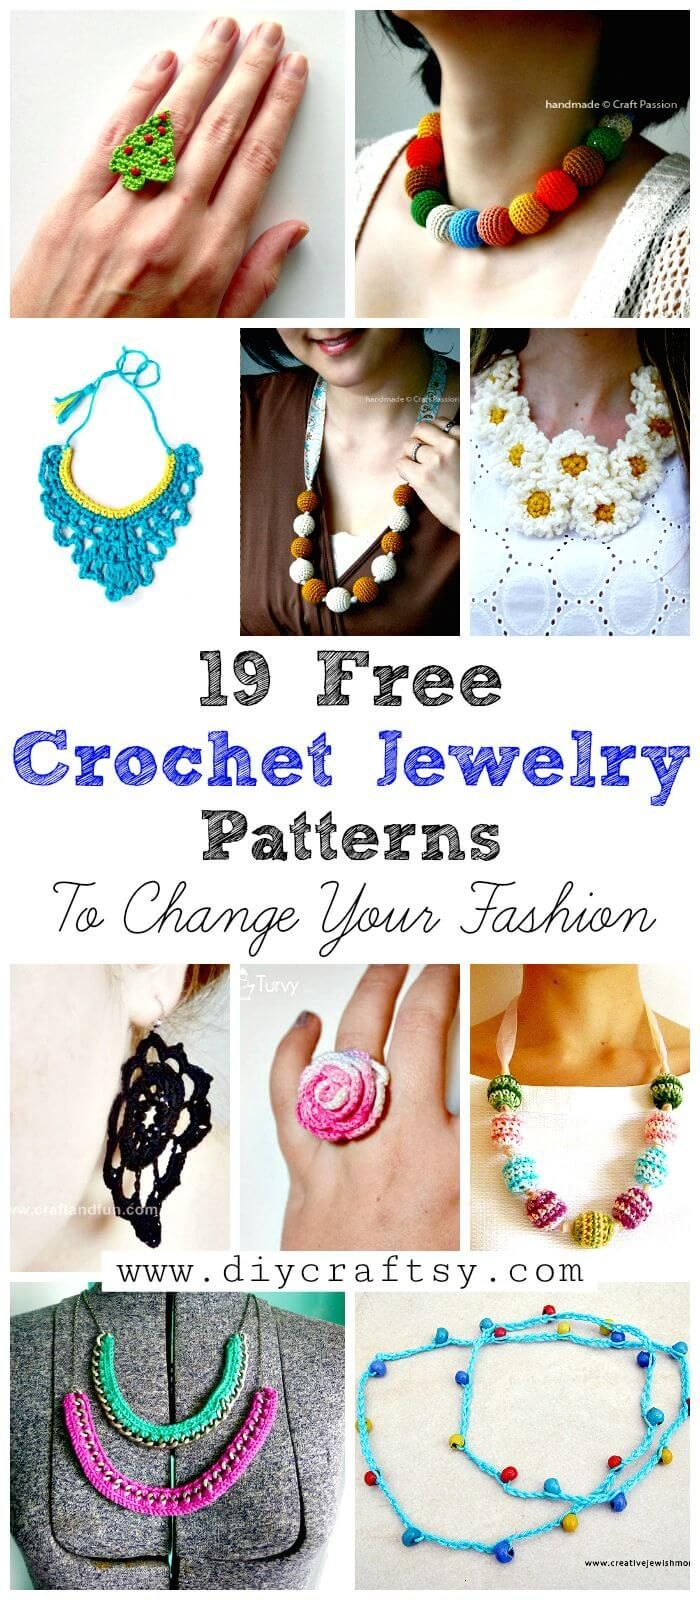 19 Free Crochet Jewelry Patterns To Change Your Fashion | Crochet 8 ...